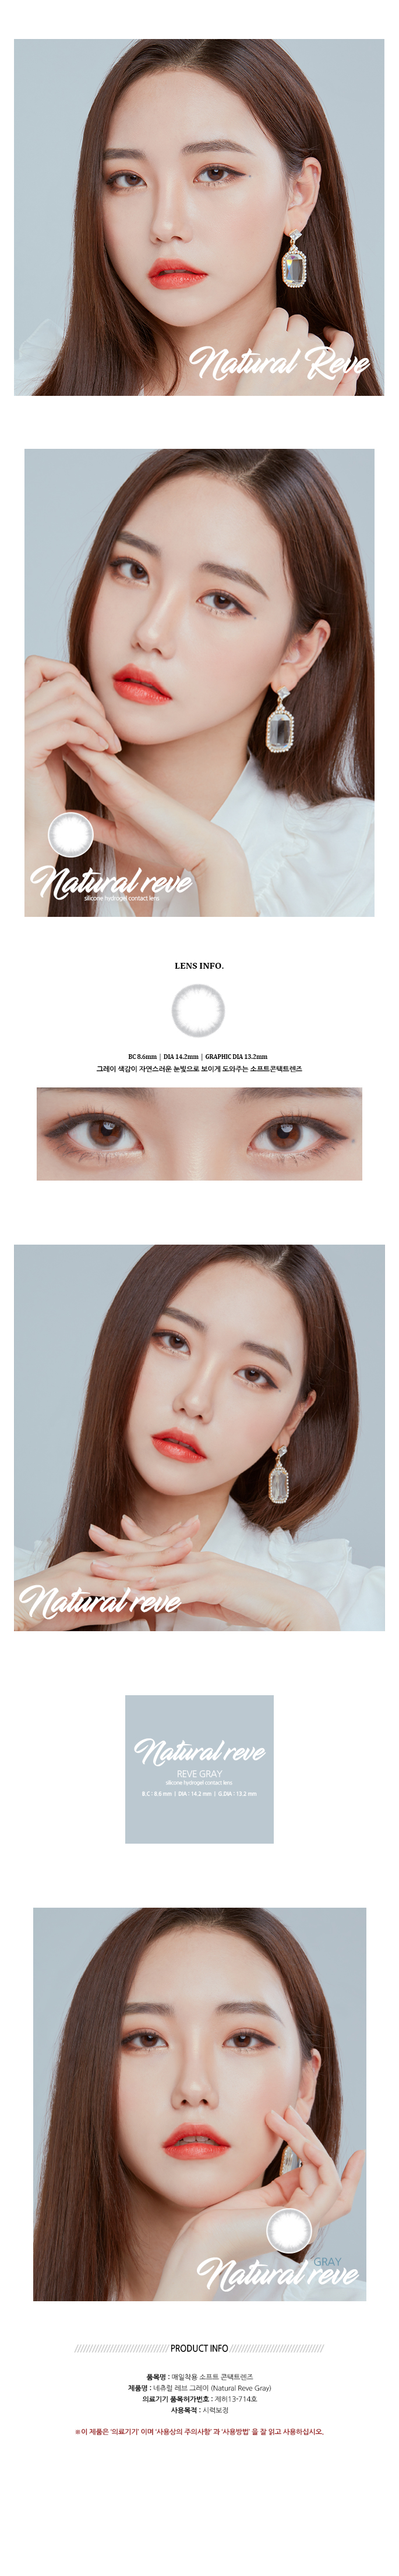 natural-reve-gray-color-contact-lenses.jpg